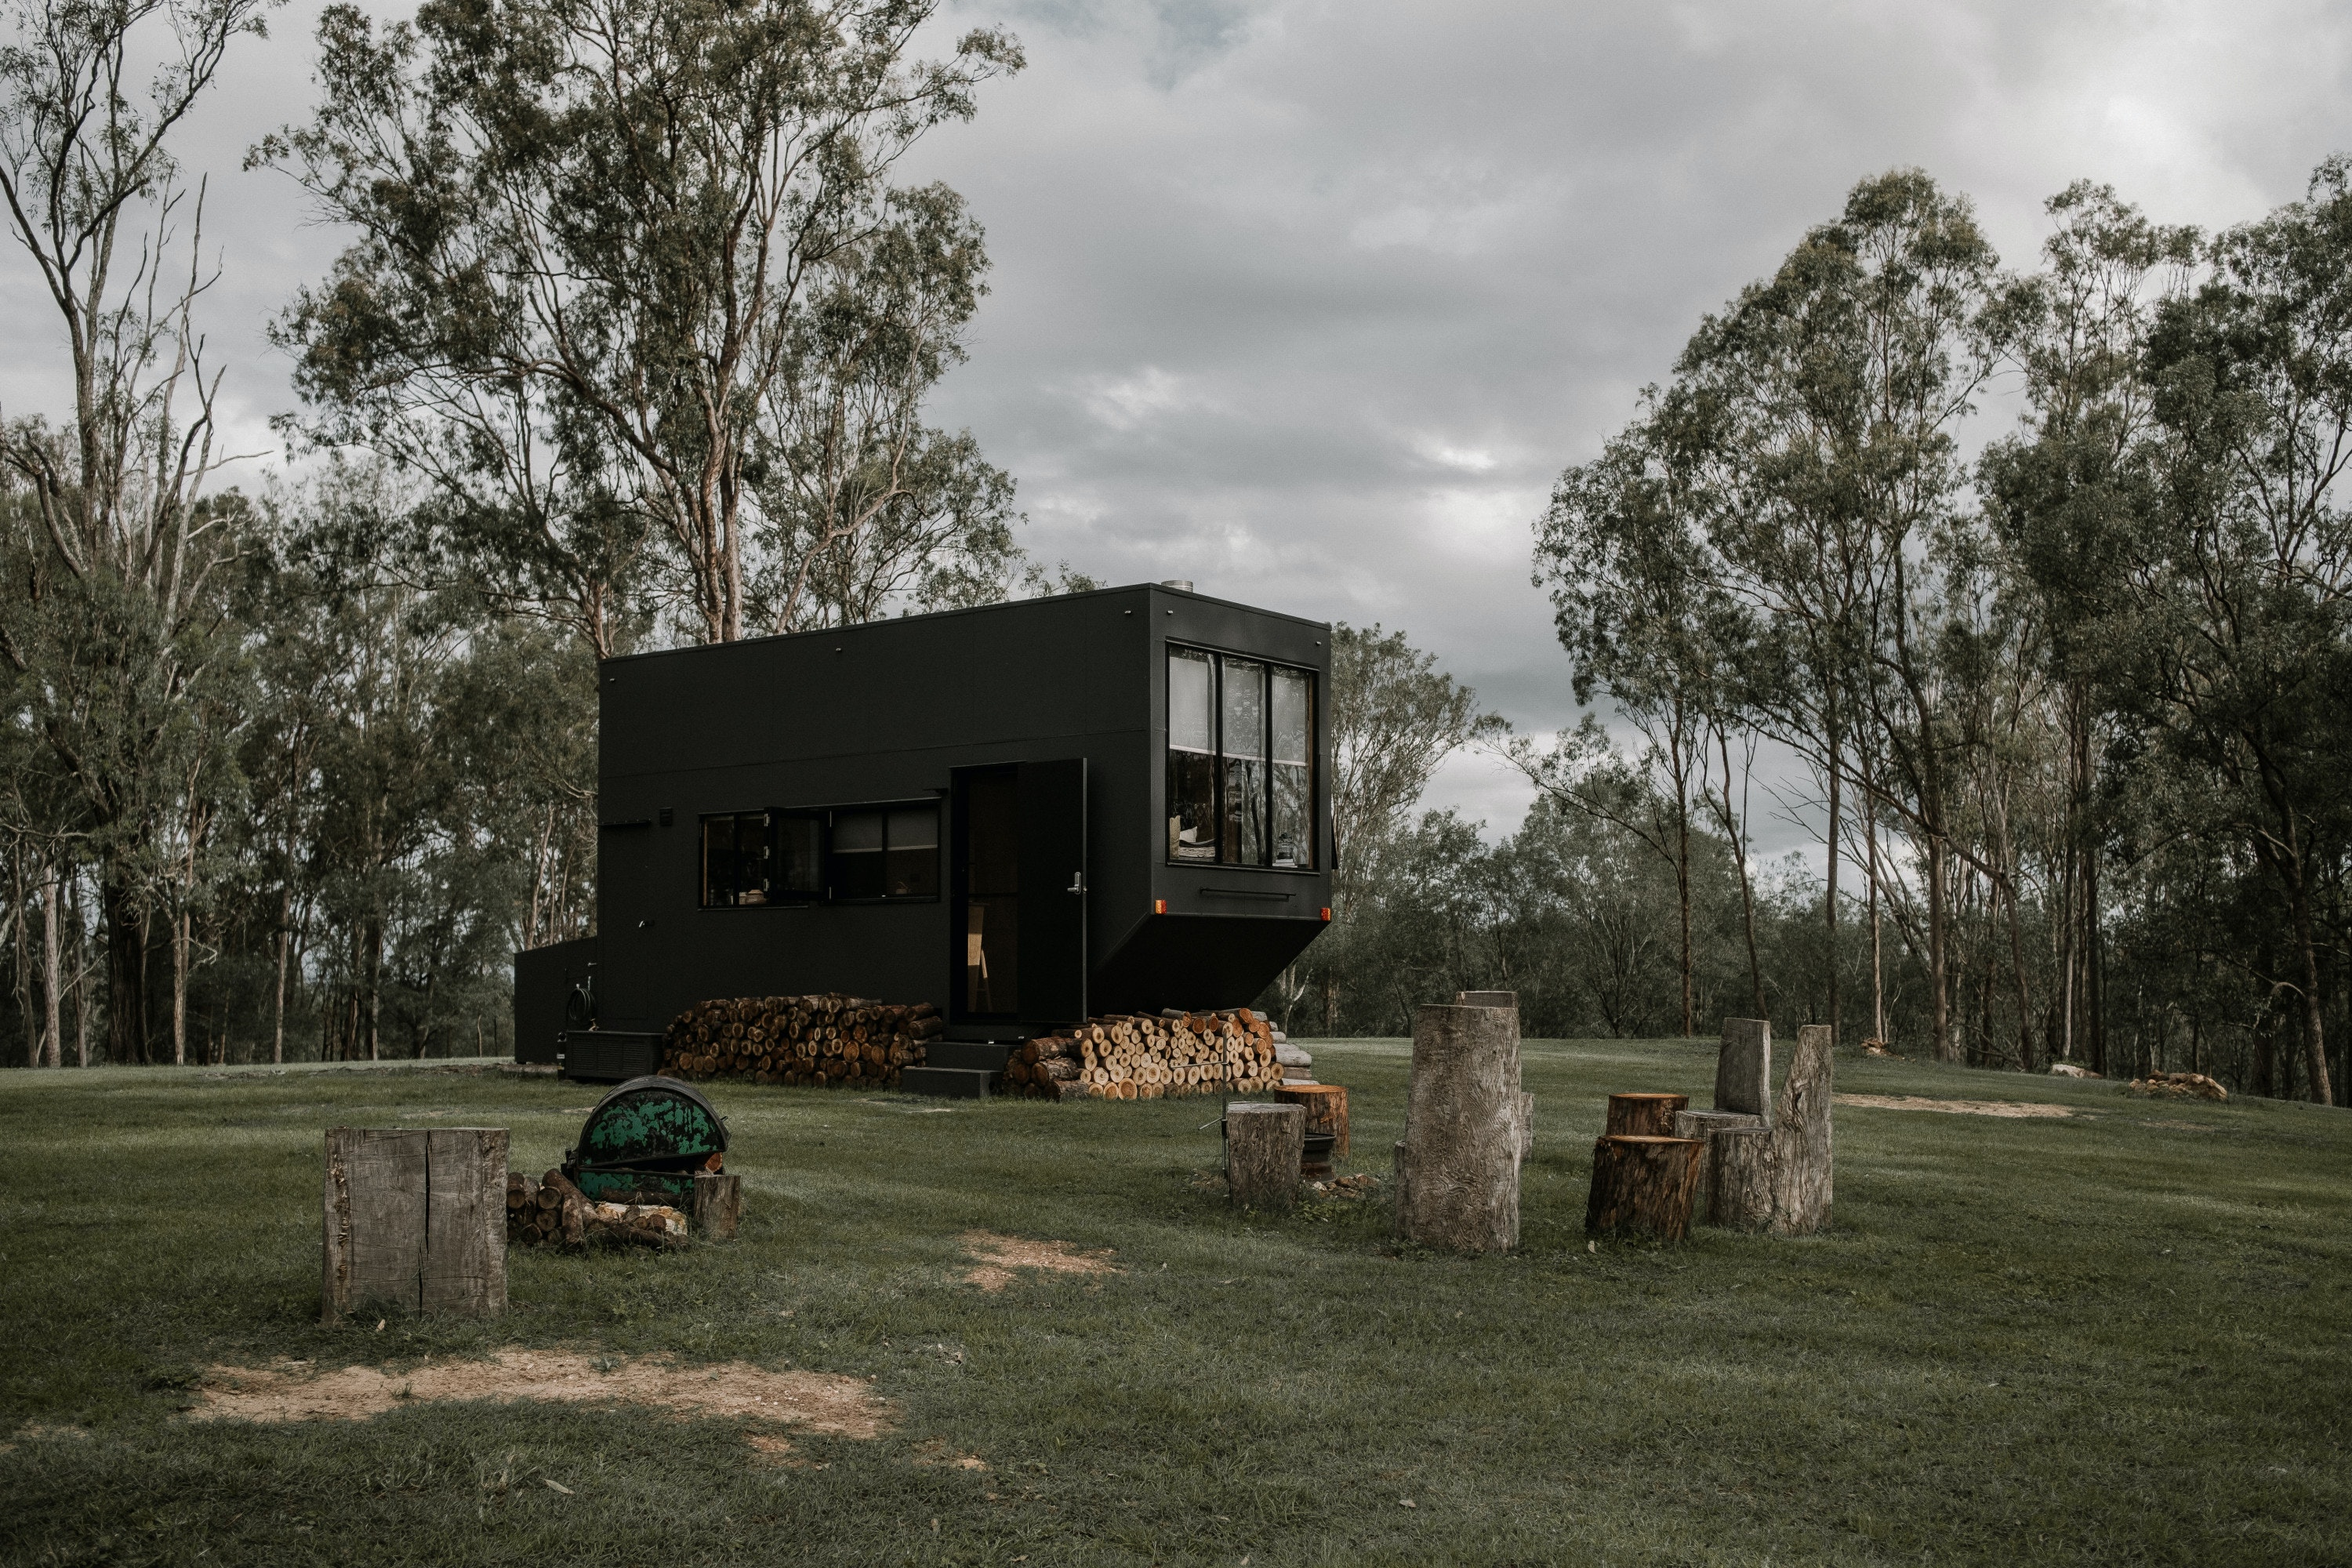 A quaint tiny home underneath gumtrees and surrounded by lush, green grass.